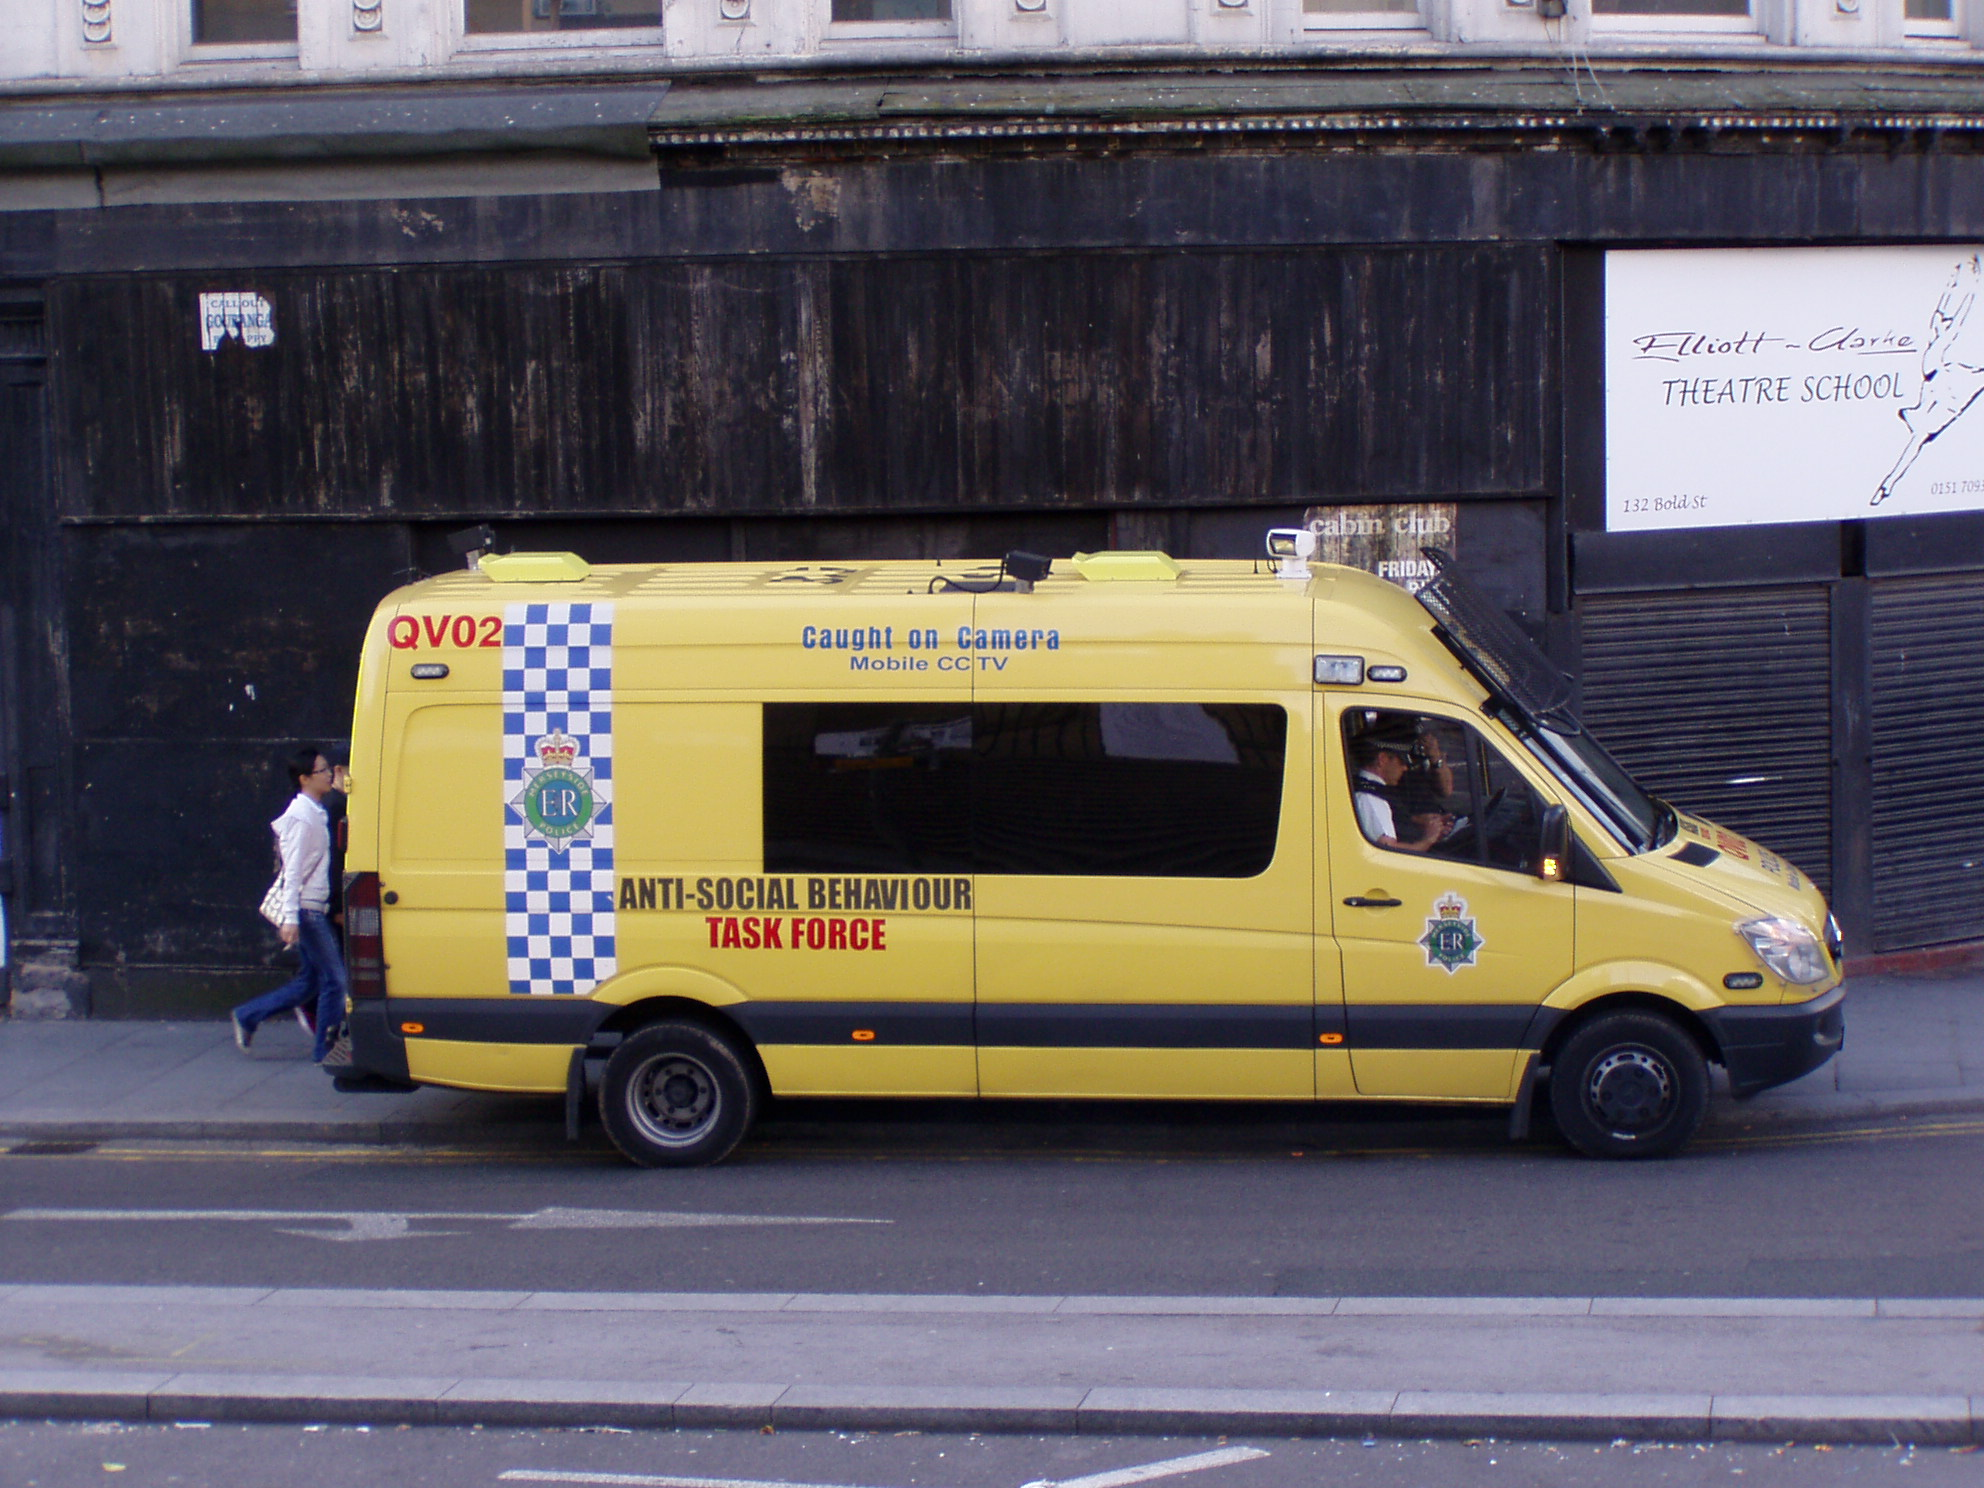 the best buying new new style File:Merseyside Police Van QV02.jpg - Wikimedia Commons